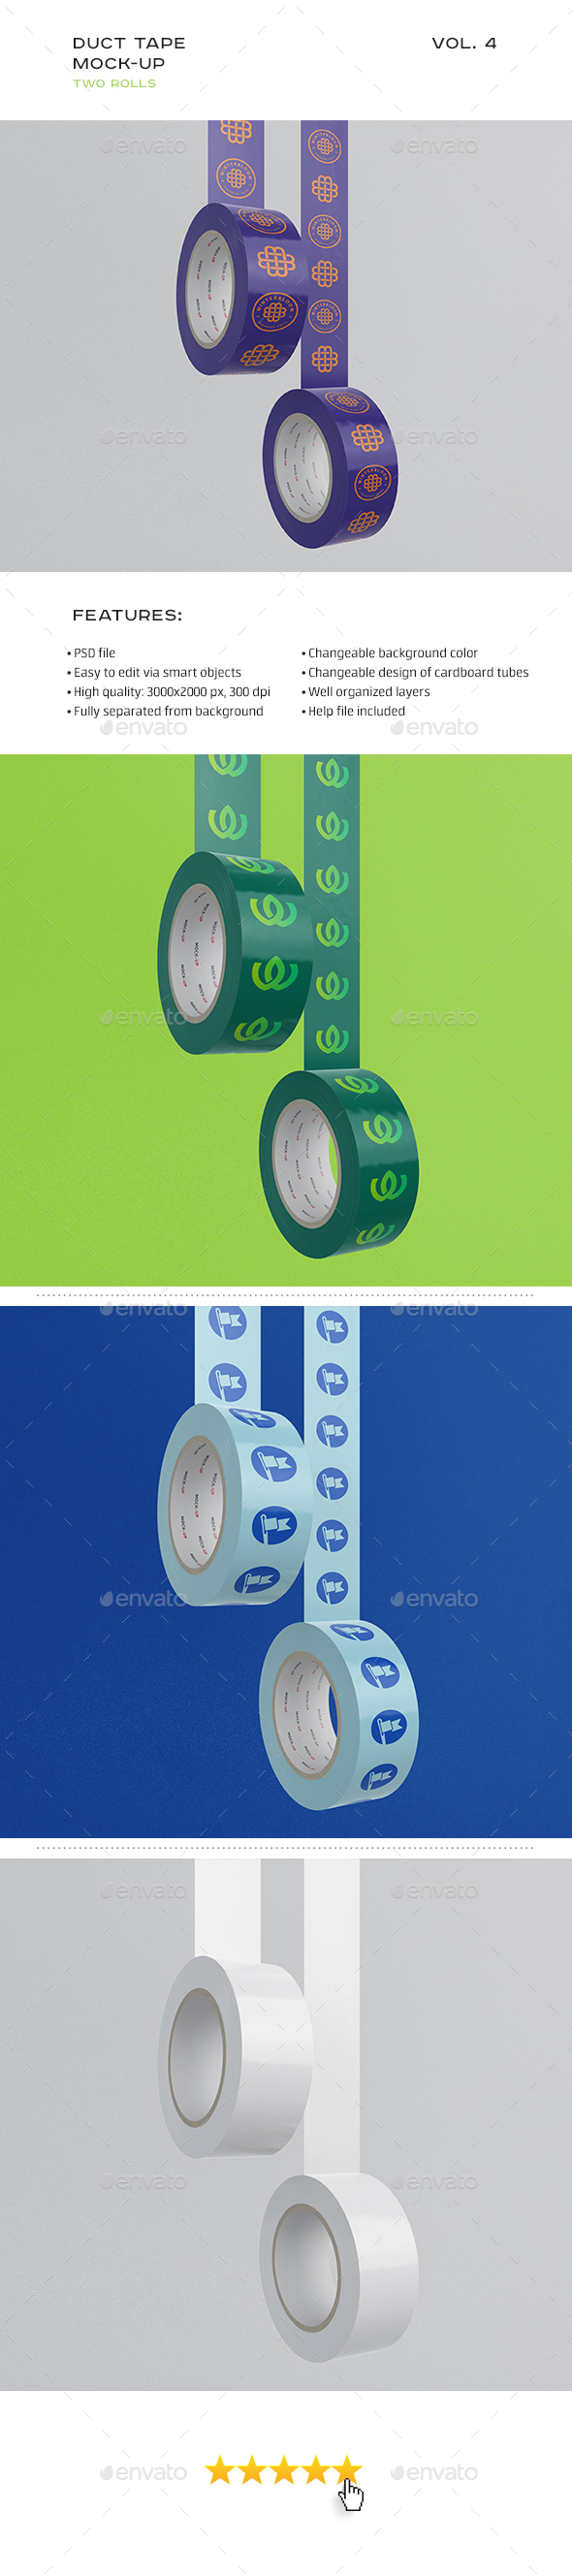 Duct Tape Mock-up vol. 4 - Stationery Print